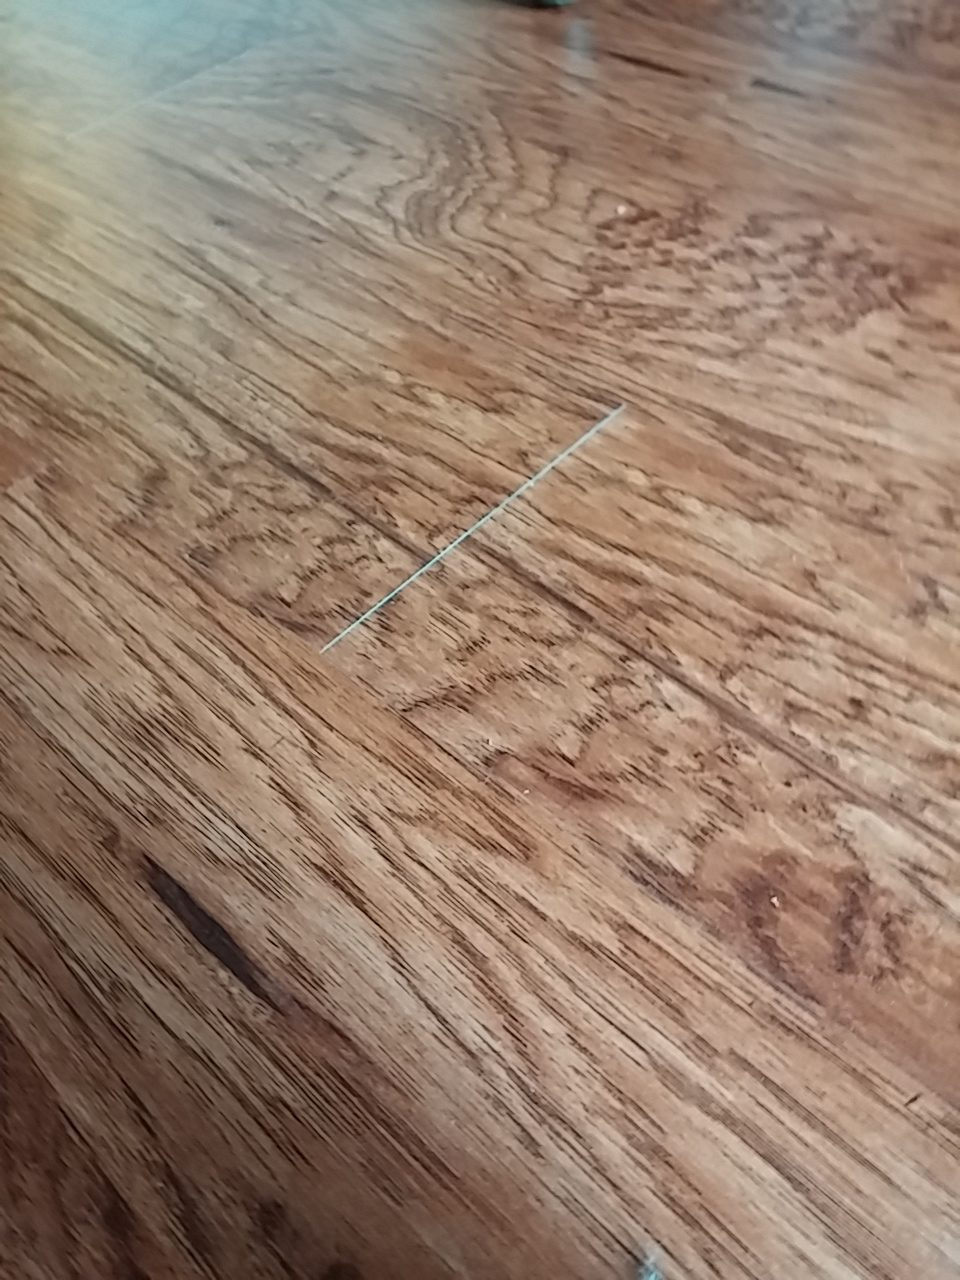 Home Depot Laminate Flooring Installation gorgeous dark stain pergo floor with granite kitchen countertop On 101015 I Paid Home Depot 496155 To Install New Floors On The First Level Of My Home On The First Day Of Installation I Notice The Installation Was